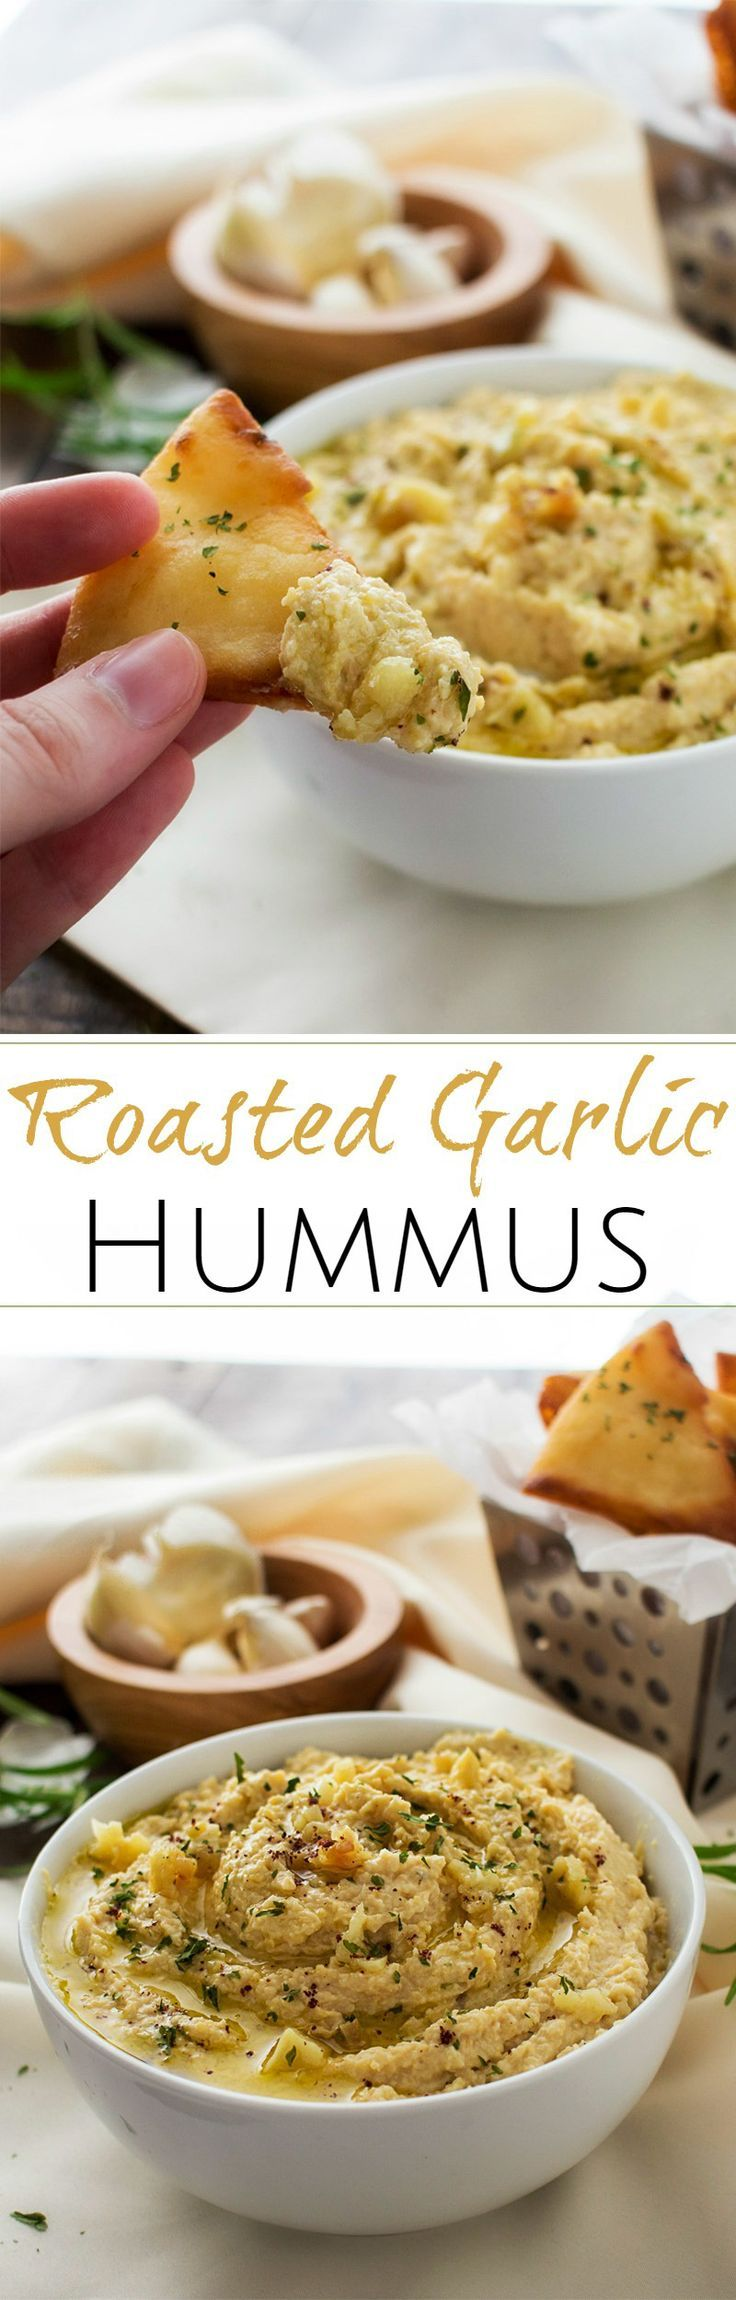 Roasted Garlic Hummus | The Chunky Chef | Creamy, rich hummus with a deep, slightly sweet roasted garlic flavor. Whip it up in the food processor and enjoy it with some crispy pita chips or naan!